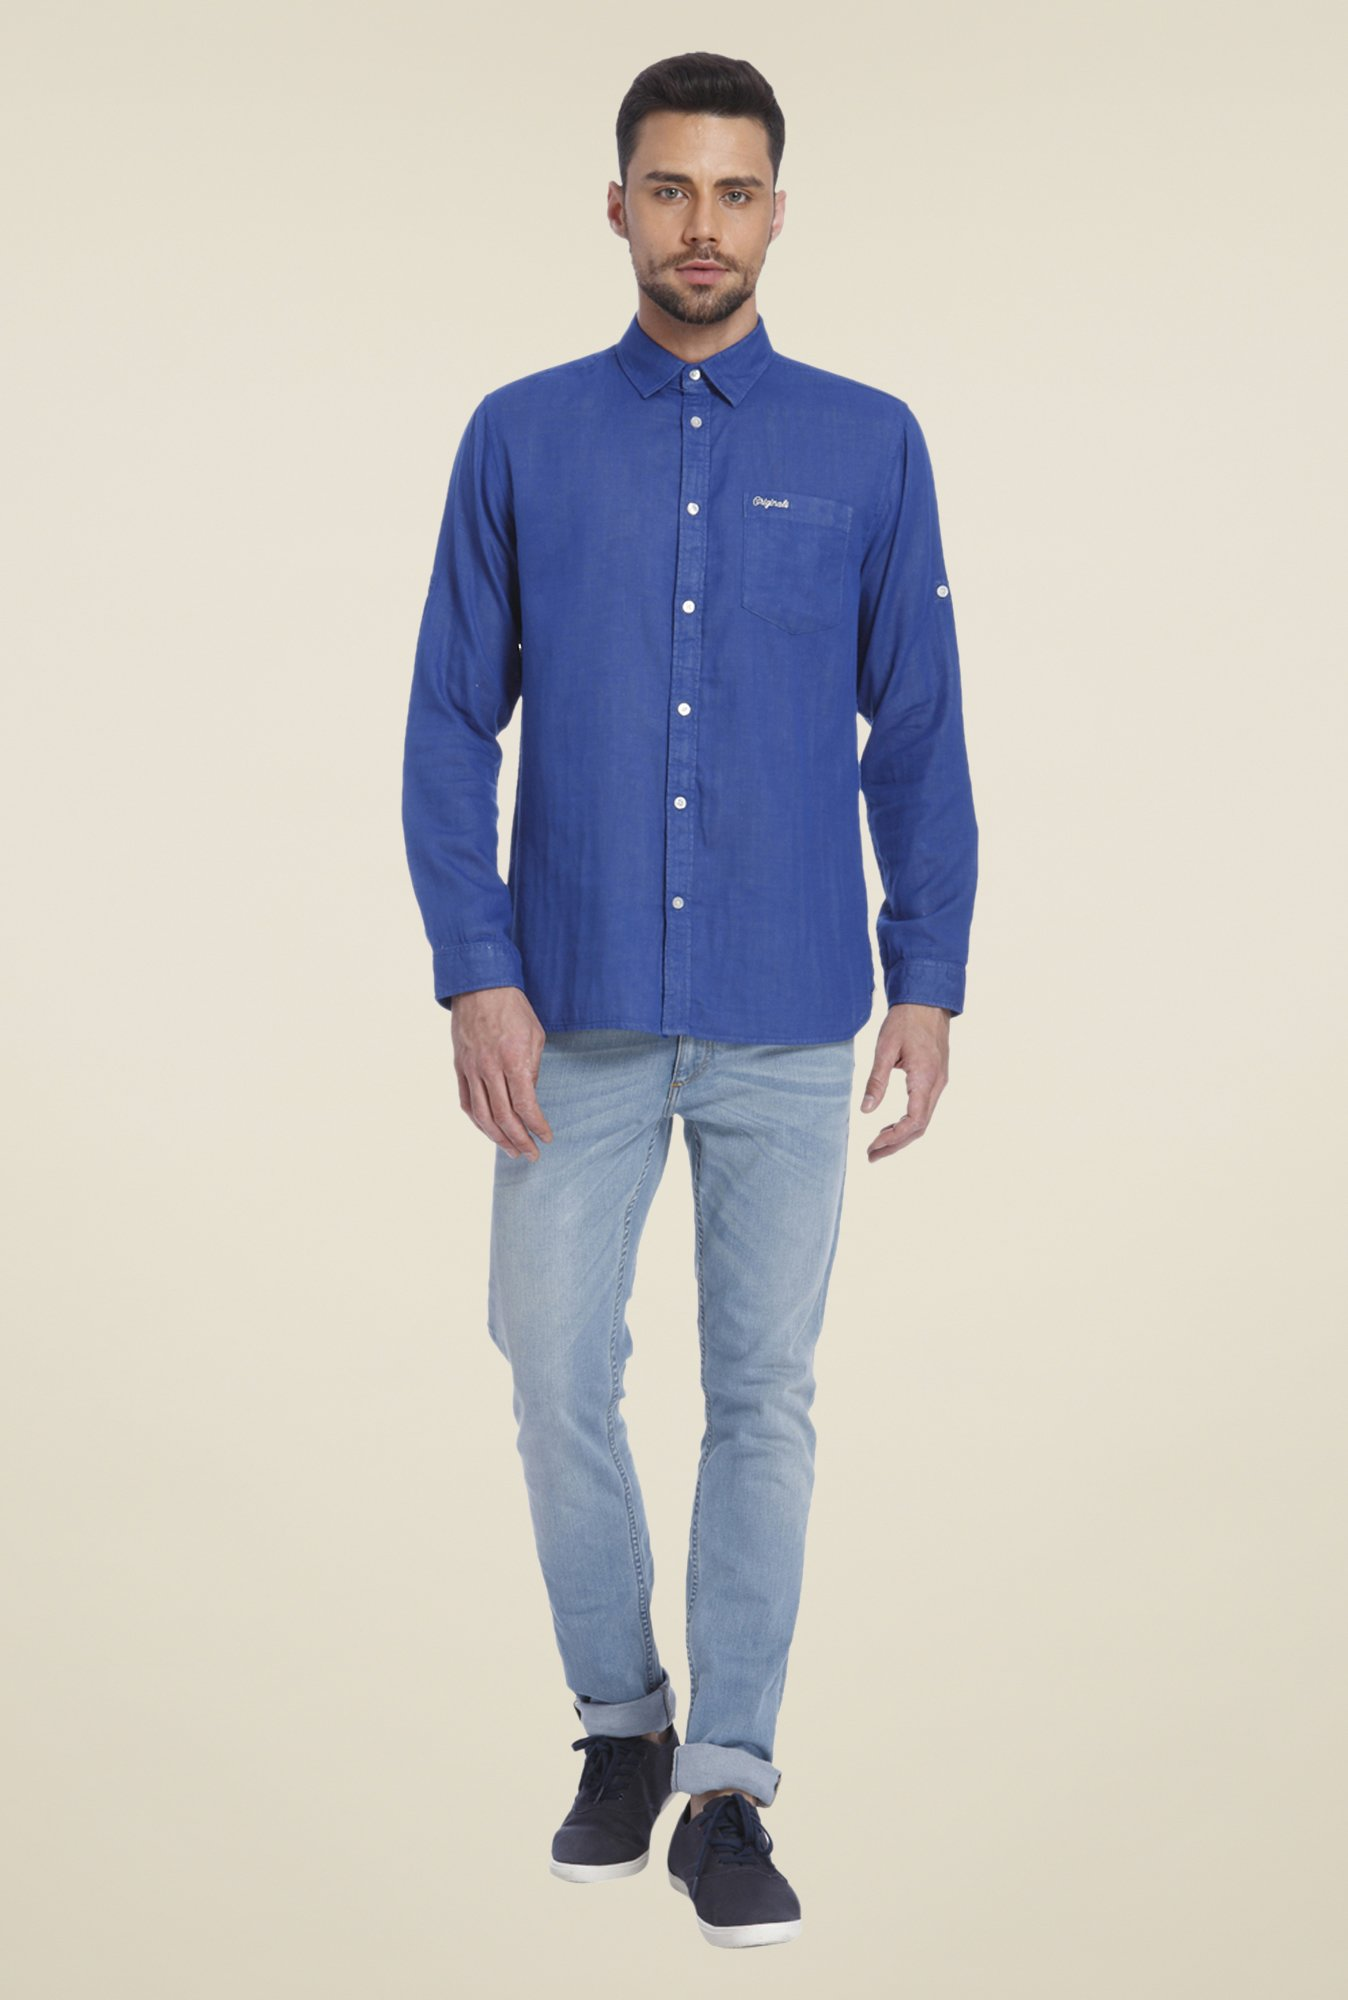 Jack & Jones Indigo Solid Shirt